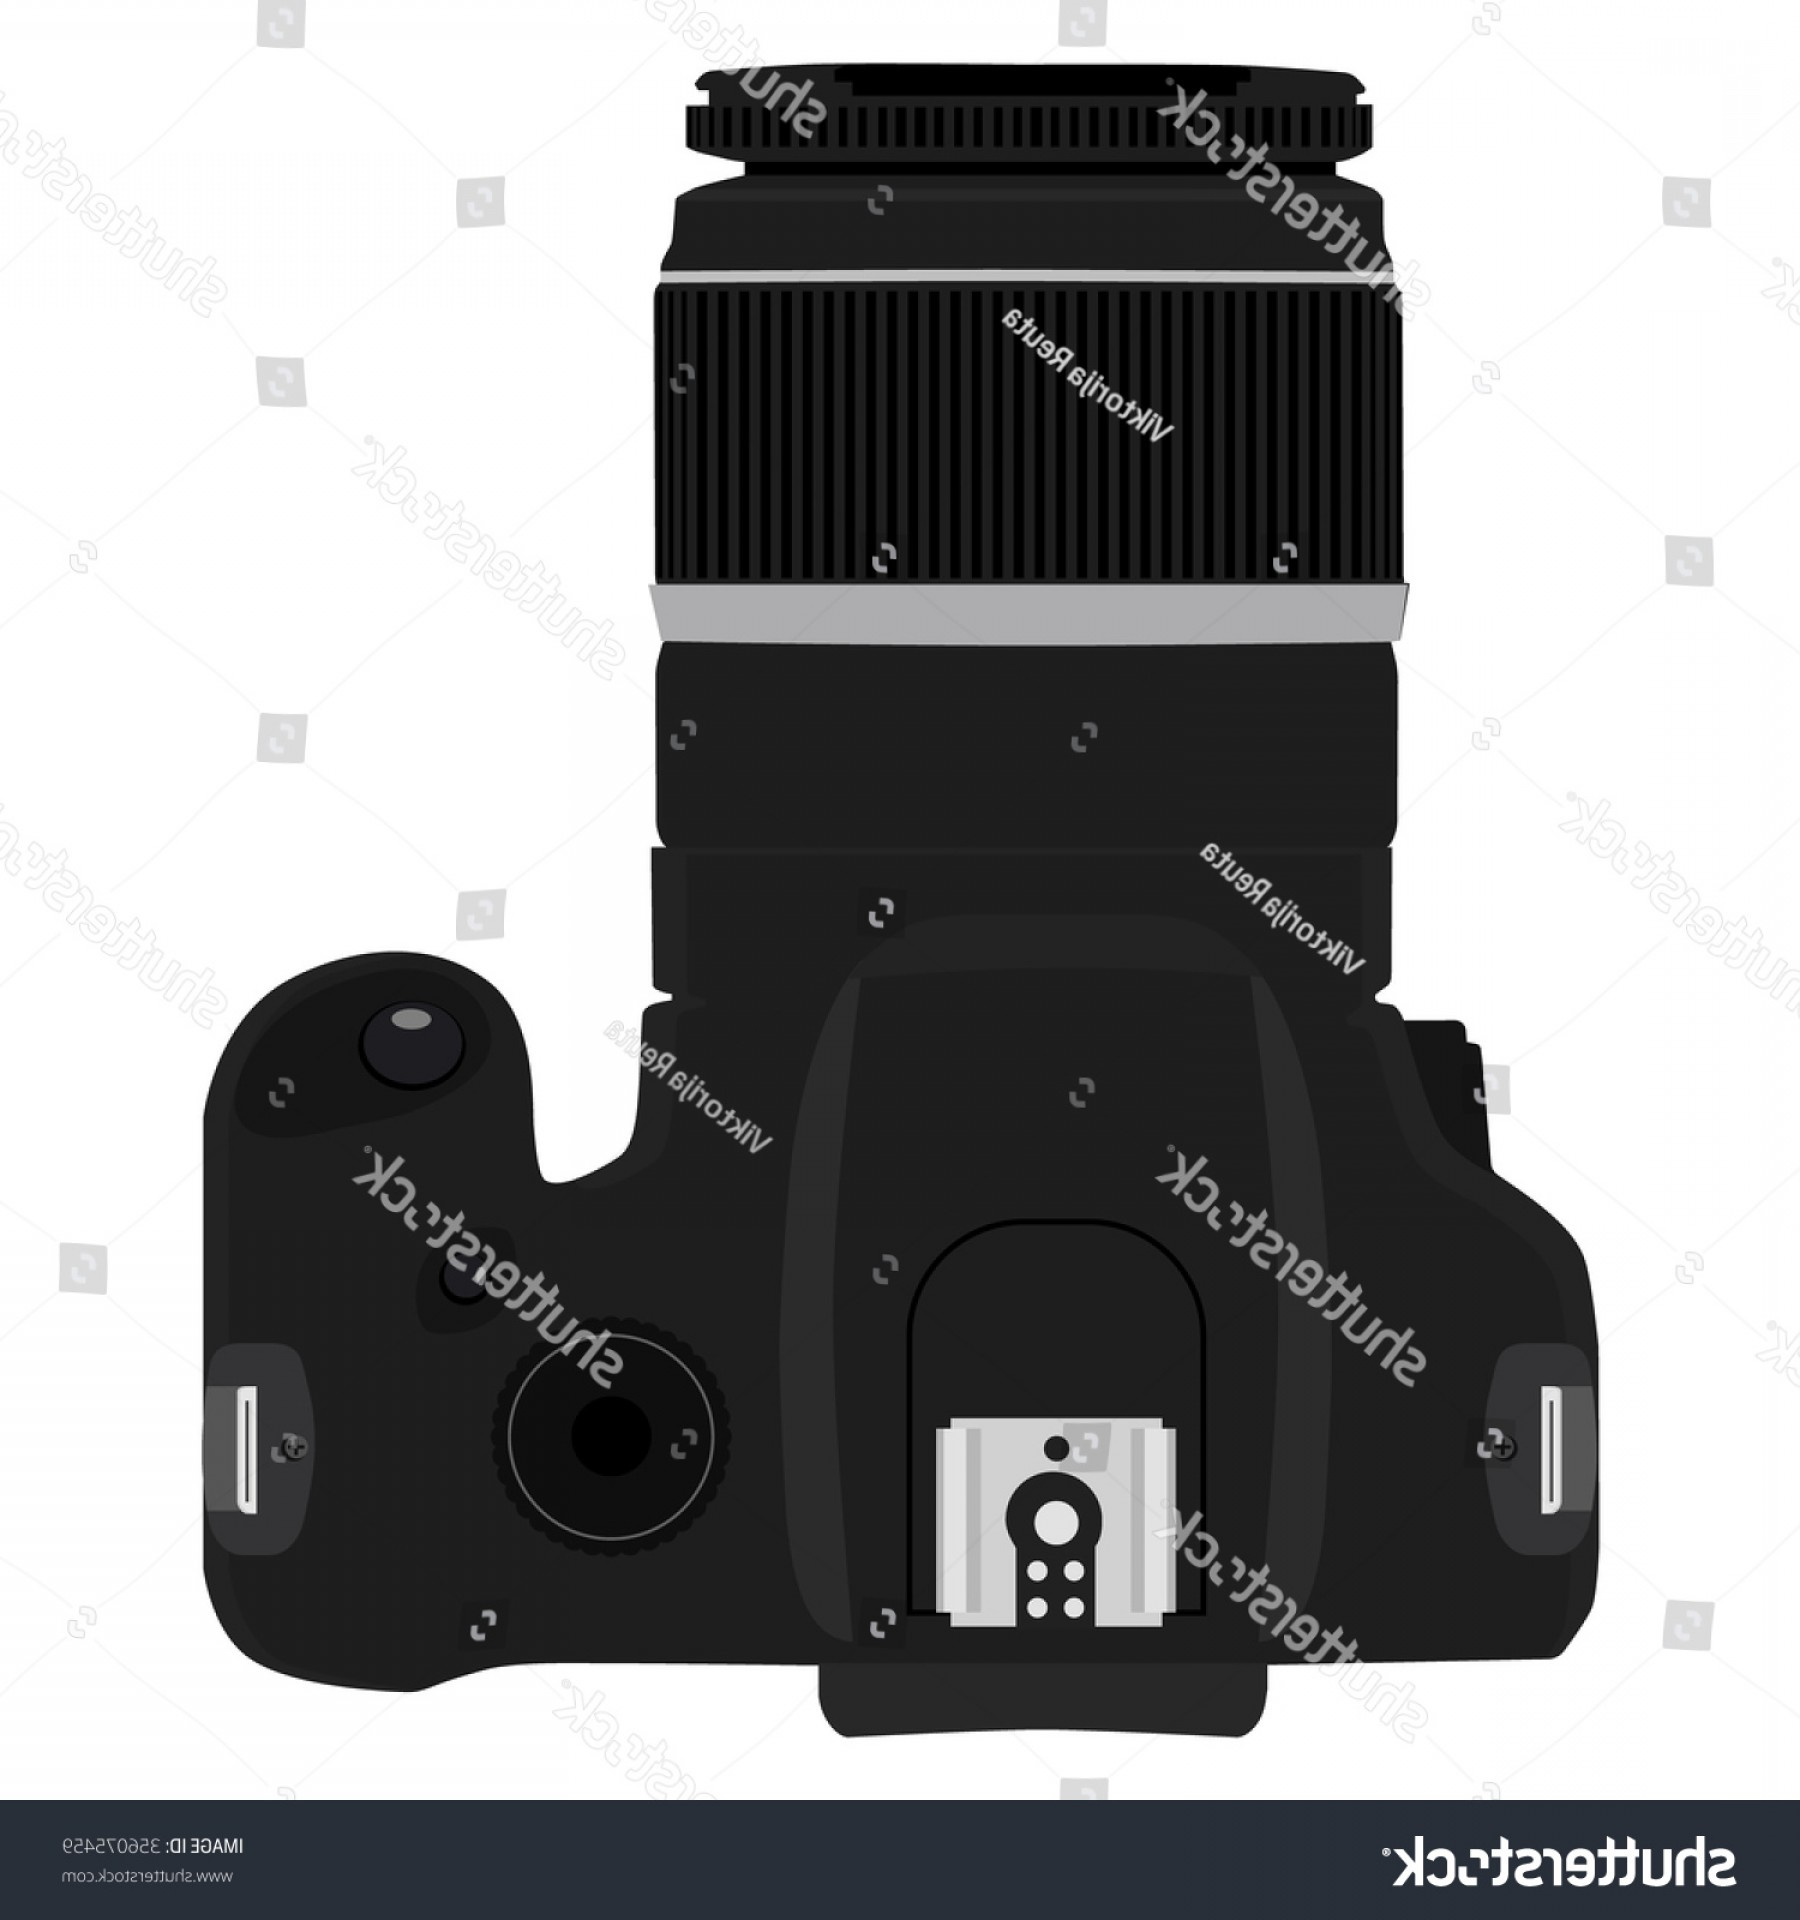 SLR Camera Vector: Vector Illustration Slr Camera Top View